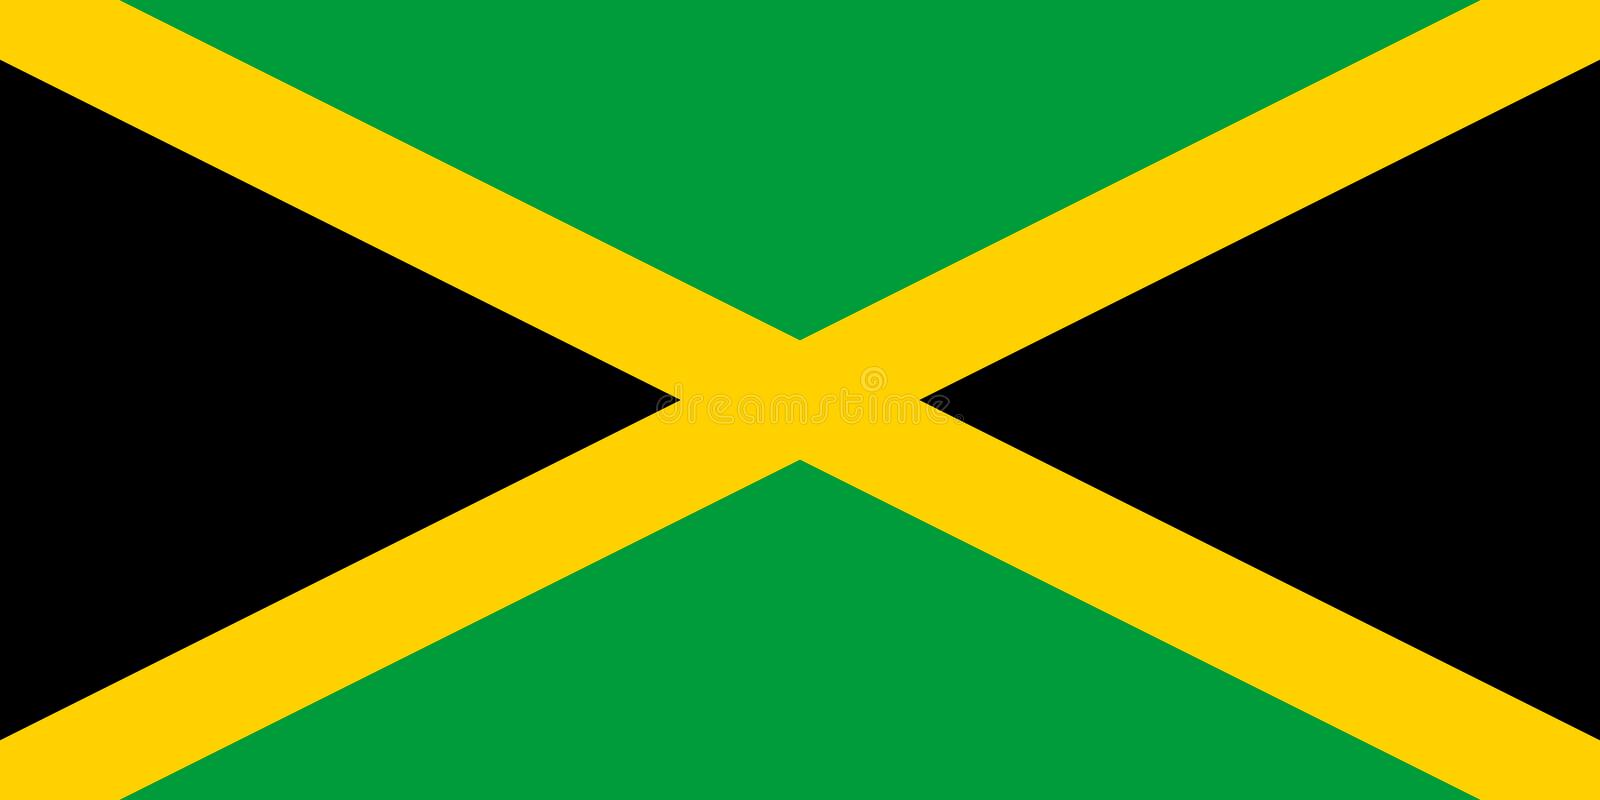 Jamaica flag in official colors and with aspect ratio of 1:2. Jamaica flag sign. Jamaica flag in official colors and with aspect ratio of 1:2. Vector royalty free illustration